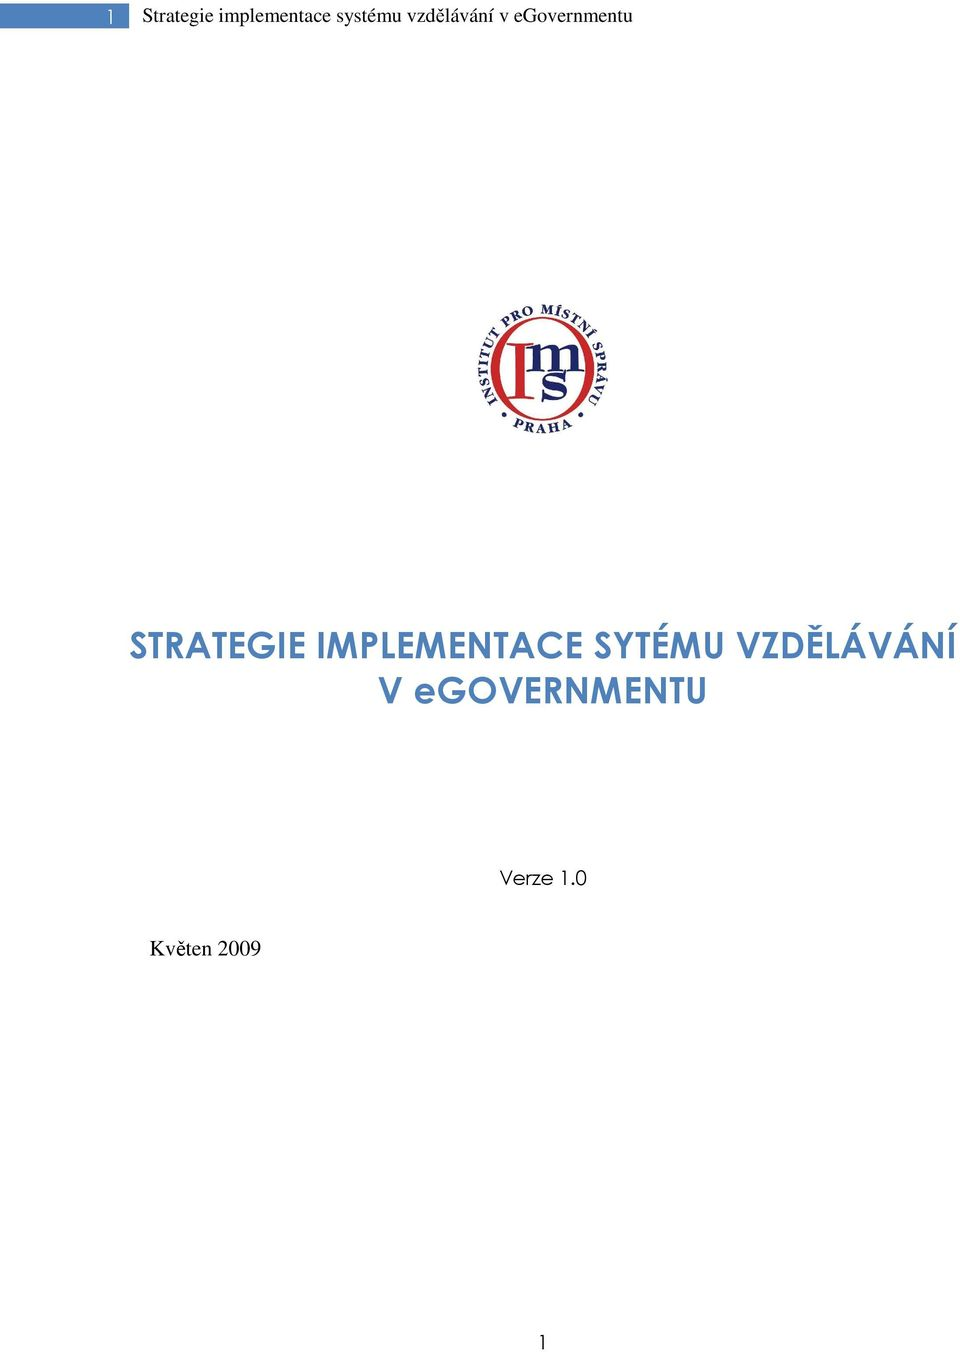 STRATEGIE IMPLEMENTACE SYTÉMU